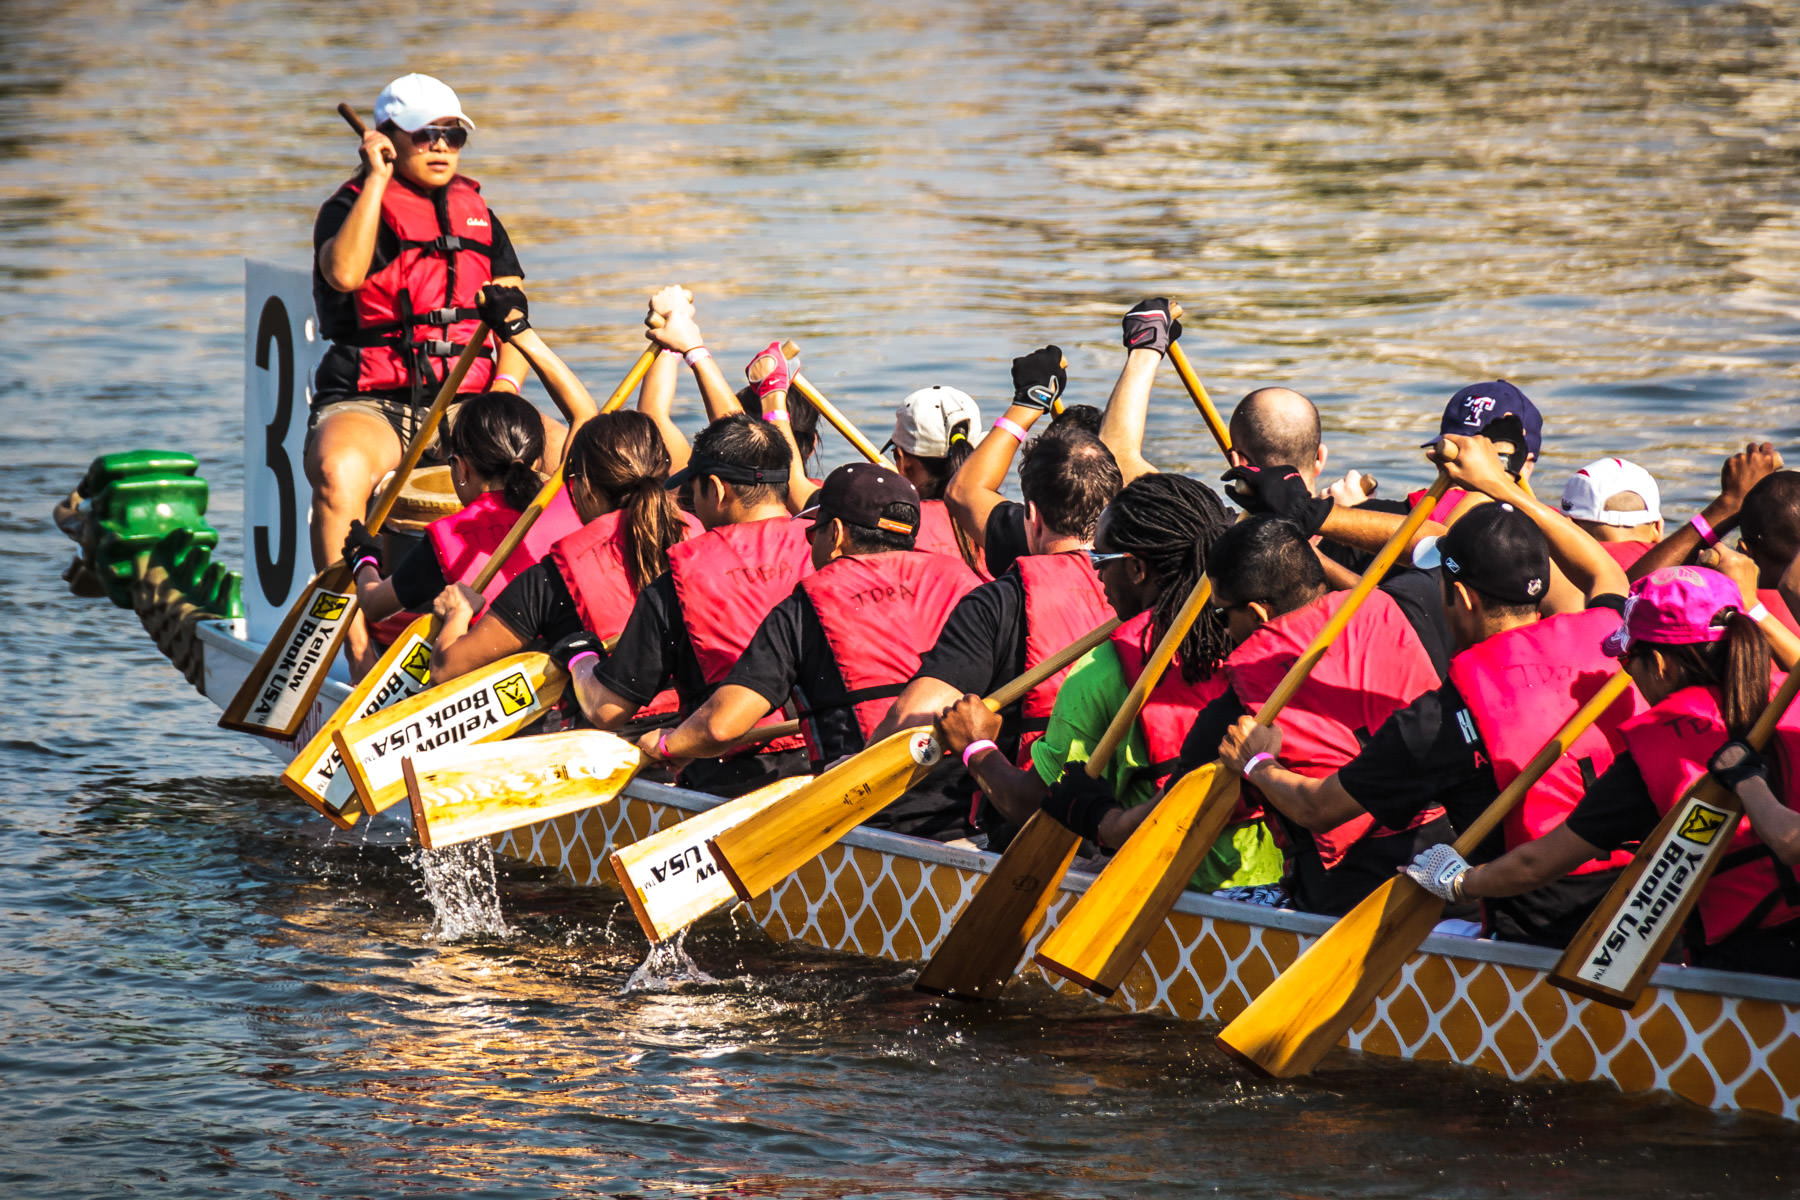 Racers rowing at the 2012 DFW Dragon Boat Festival, Lake Carolyn, Las Colinas, Irving, Texas.